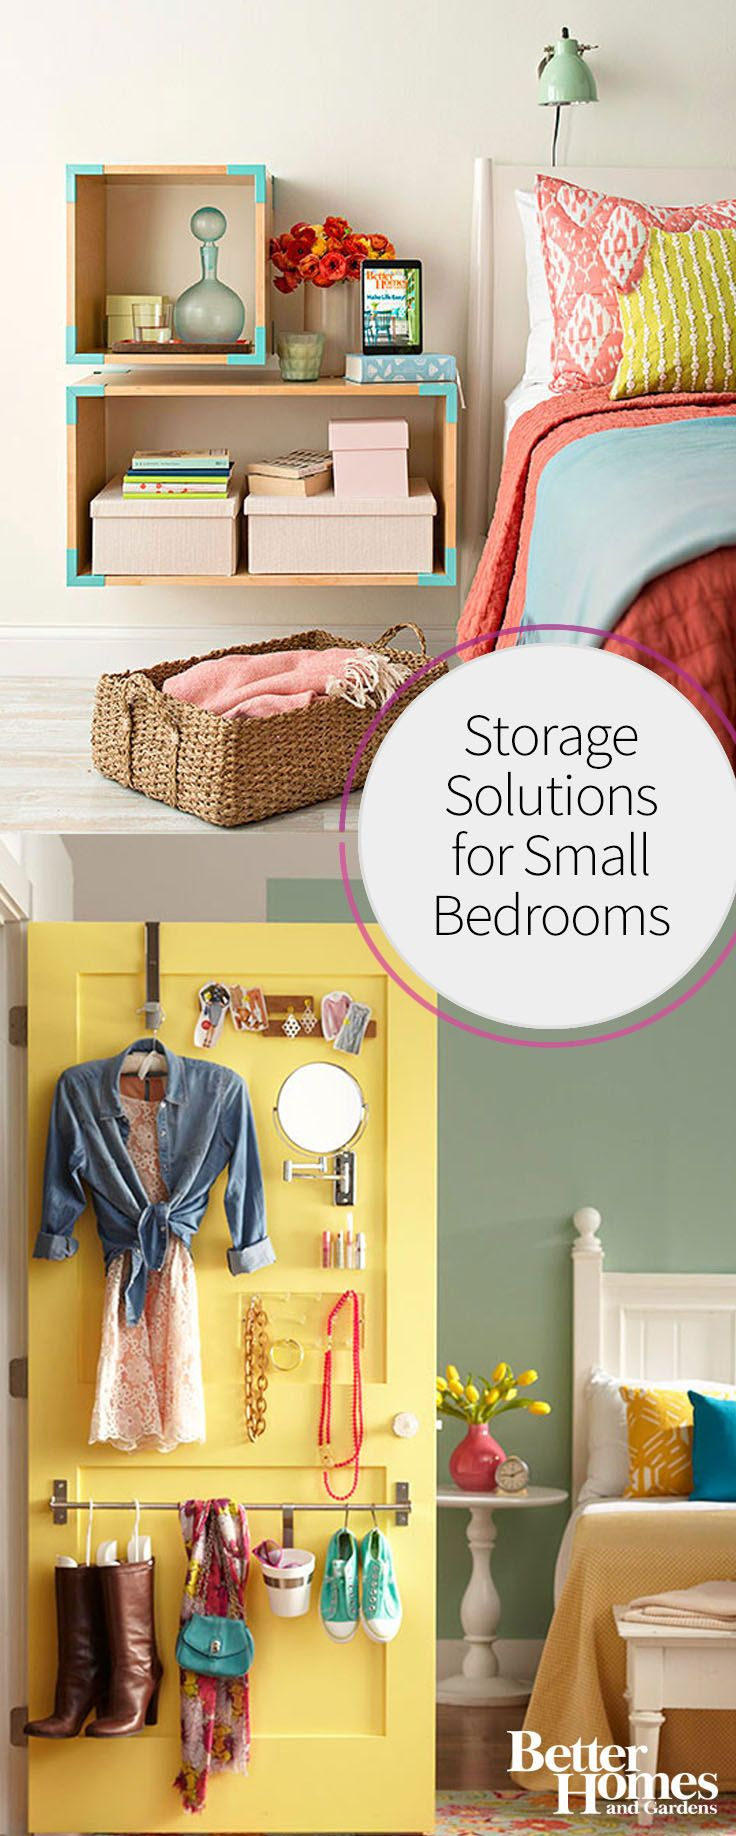 Best 25 small bedroom storage ideas on pinterest - Ideas for beds in small spaces model ...